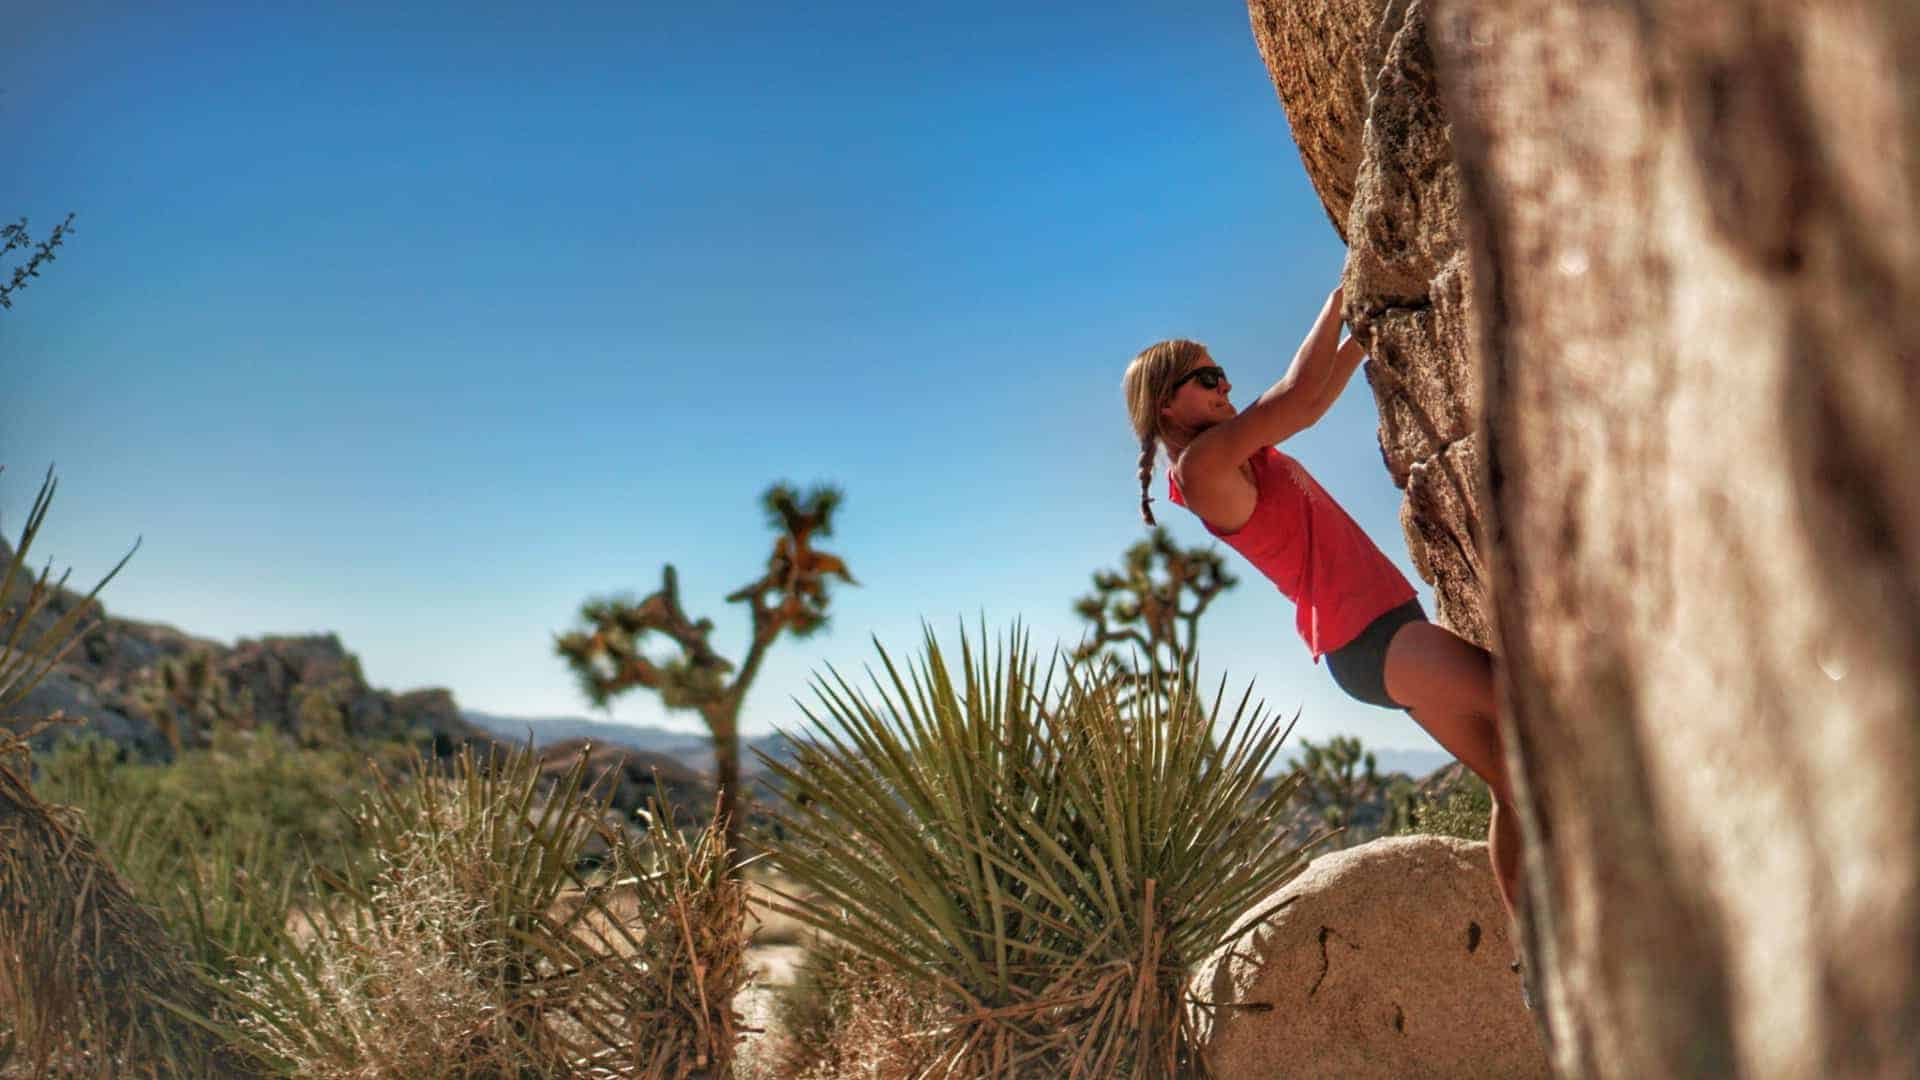 Best beginner climbs in joshua tree national park